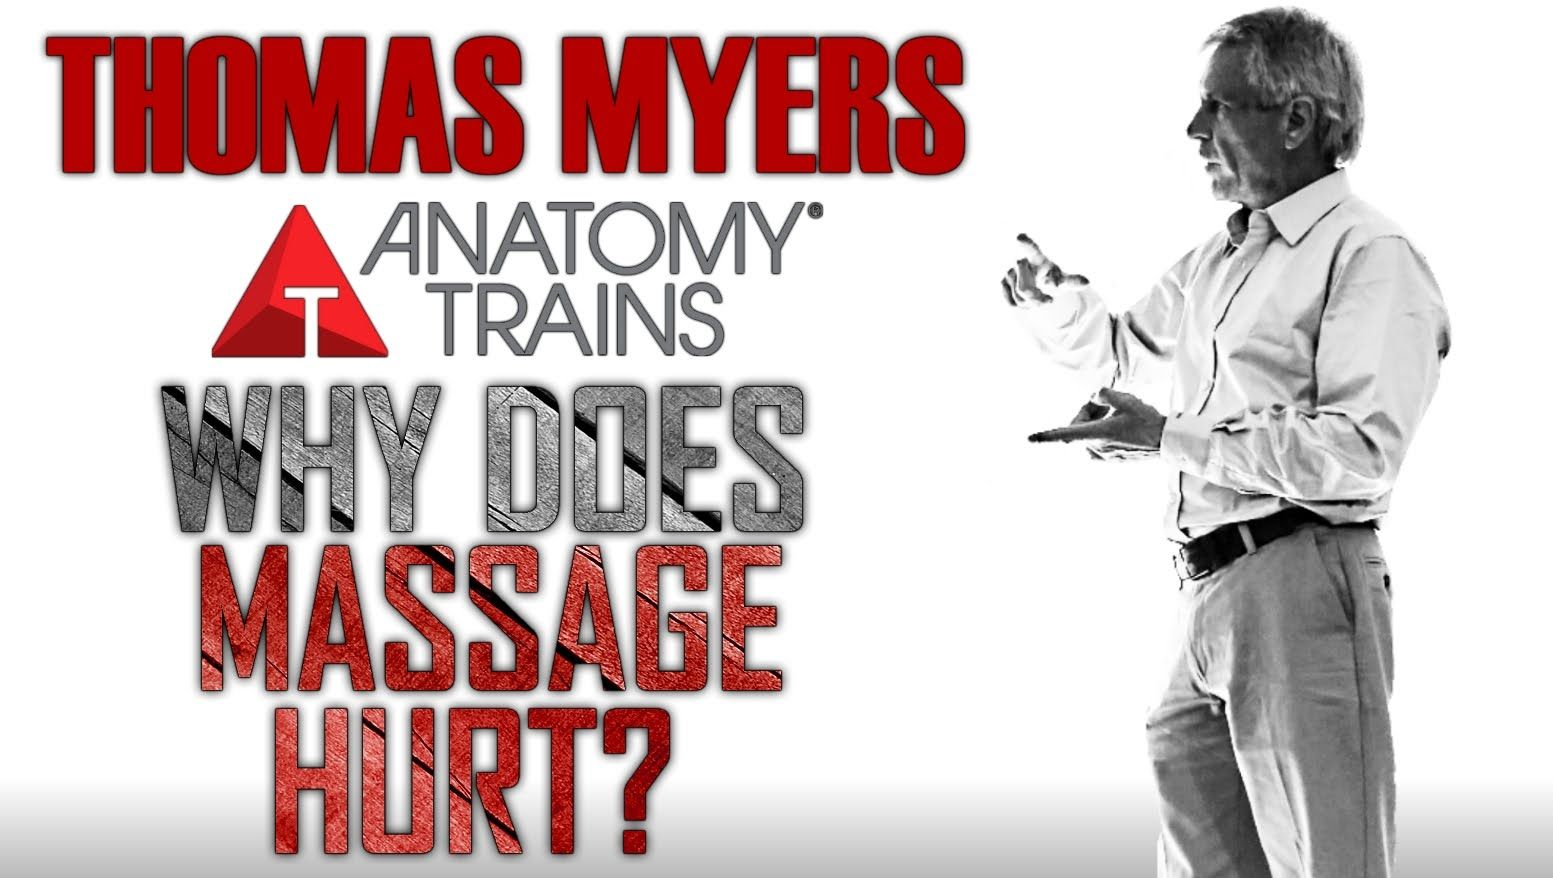 Thomas Myers From Anatomy Trains Breaks Down Why Massage Myofascial